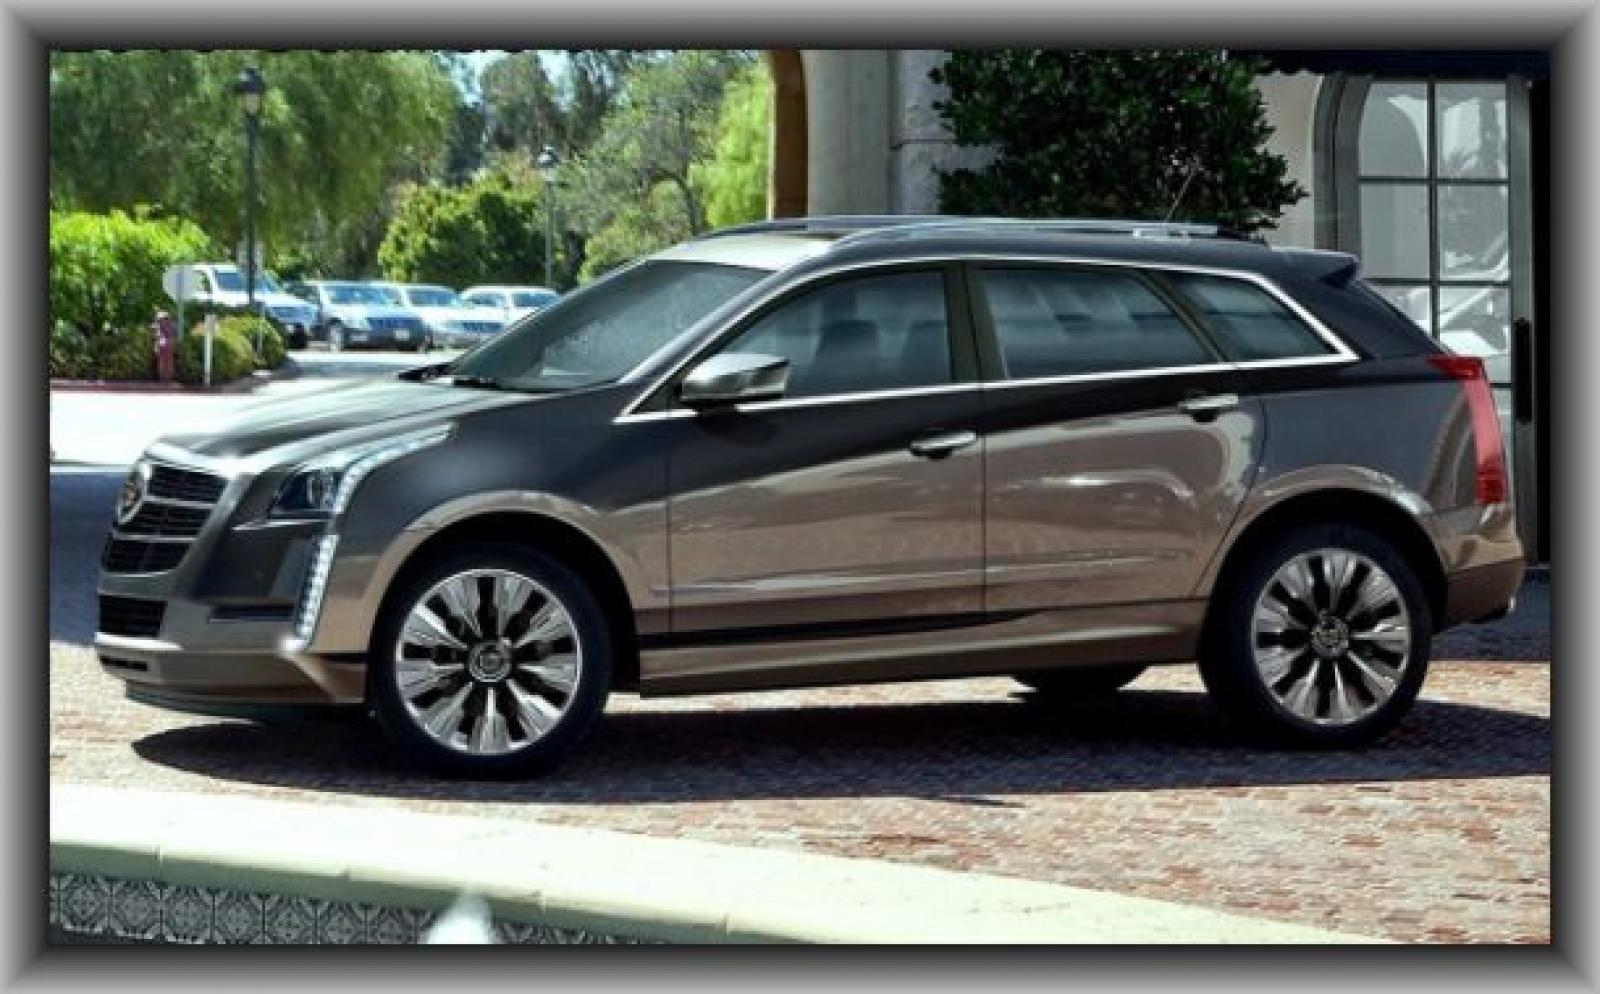 cadillac srx 4 2015 review amazing pictures and images look at the car. Black Bedroom Furniture Sets. Home Design Ideas